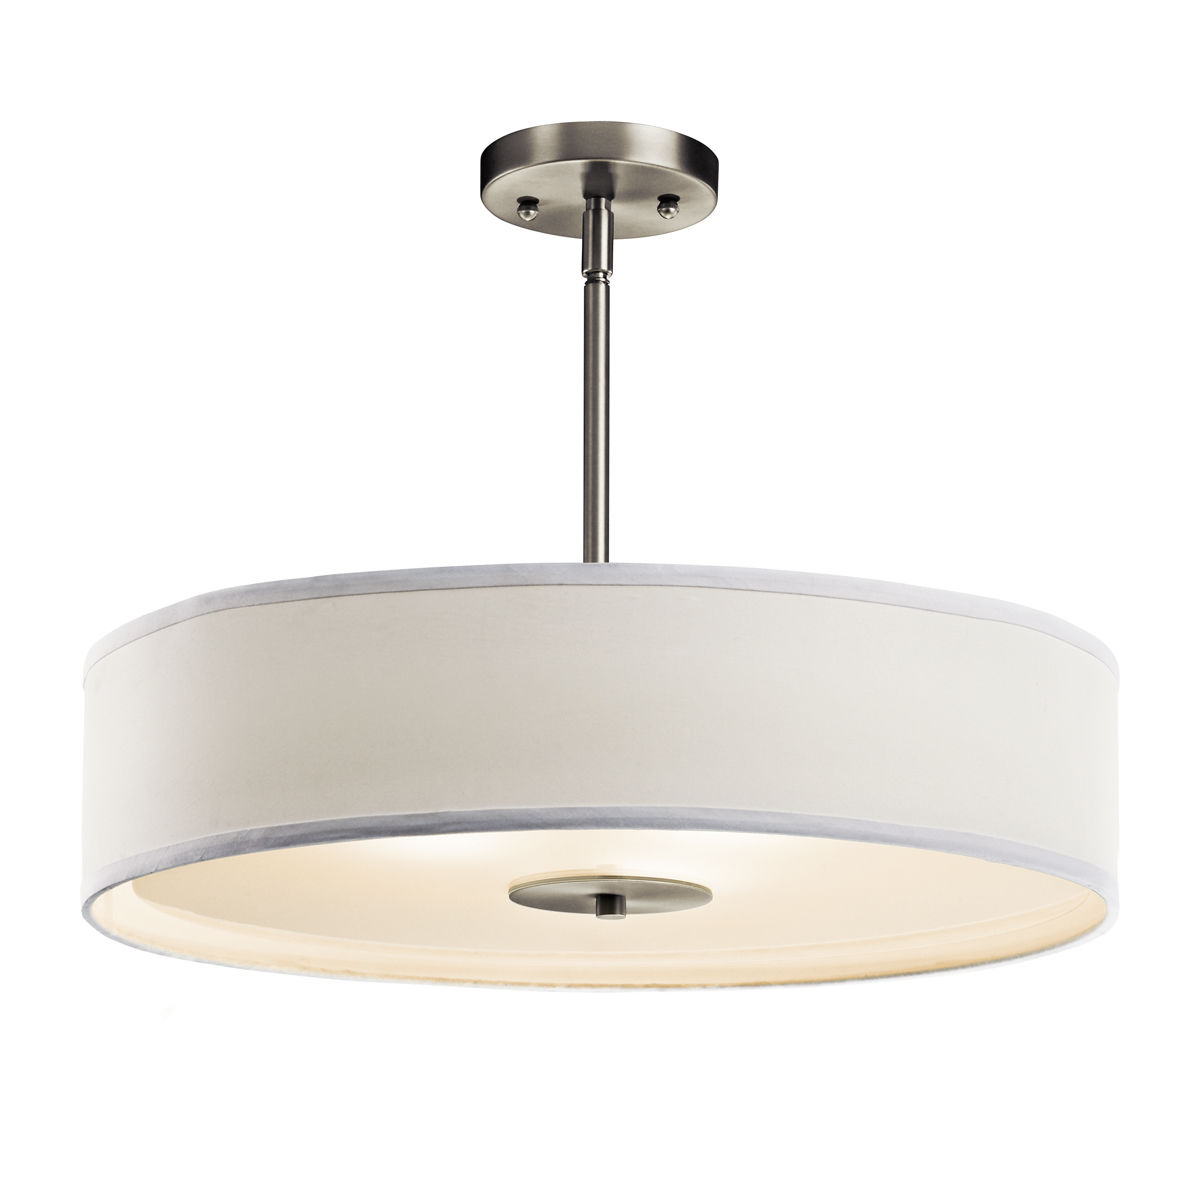 Kichler 42121ni brushed nickel 3 light 20 wide convertible kichler 42121ni brushed nickel 3 light 20 wide convertible pendant semi flush ceiling fixture with drum fabric shade lightingdirect aloadofball